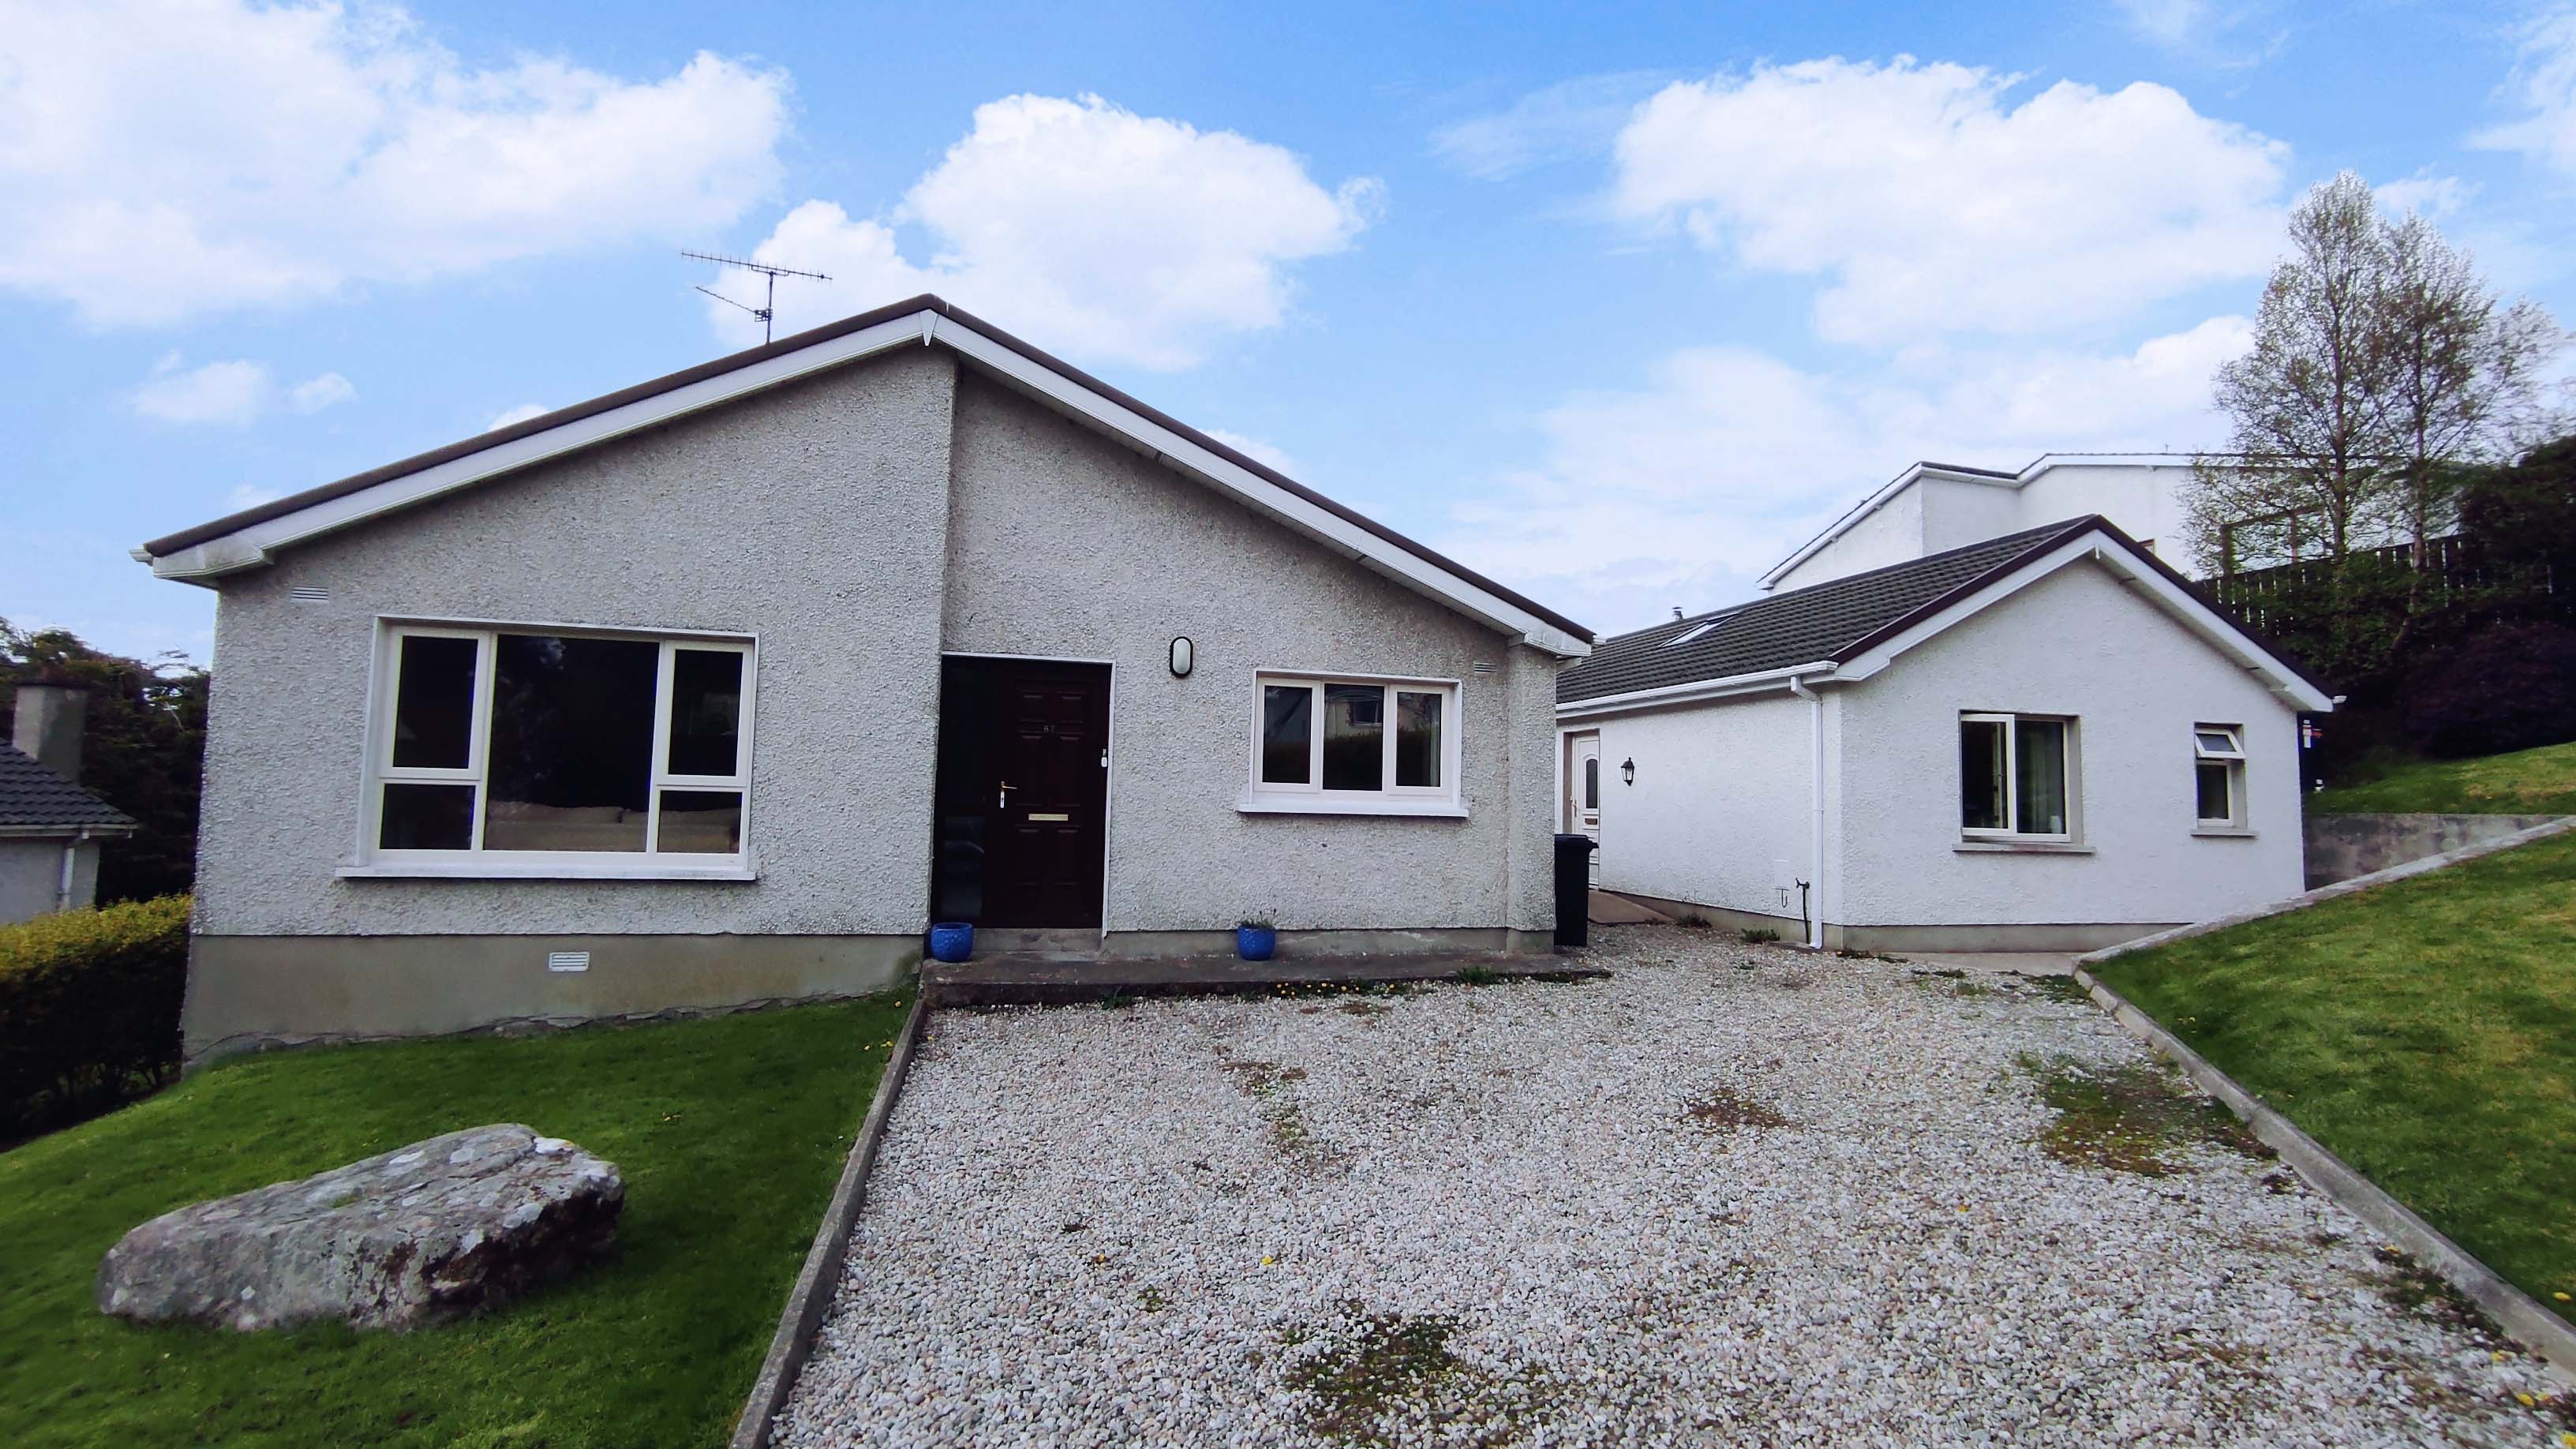 87 Hawthorn Heights, Letterkenny, Co. Donegal, F92 FVP0